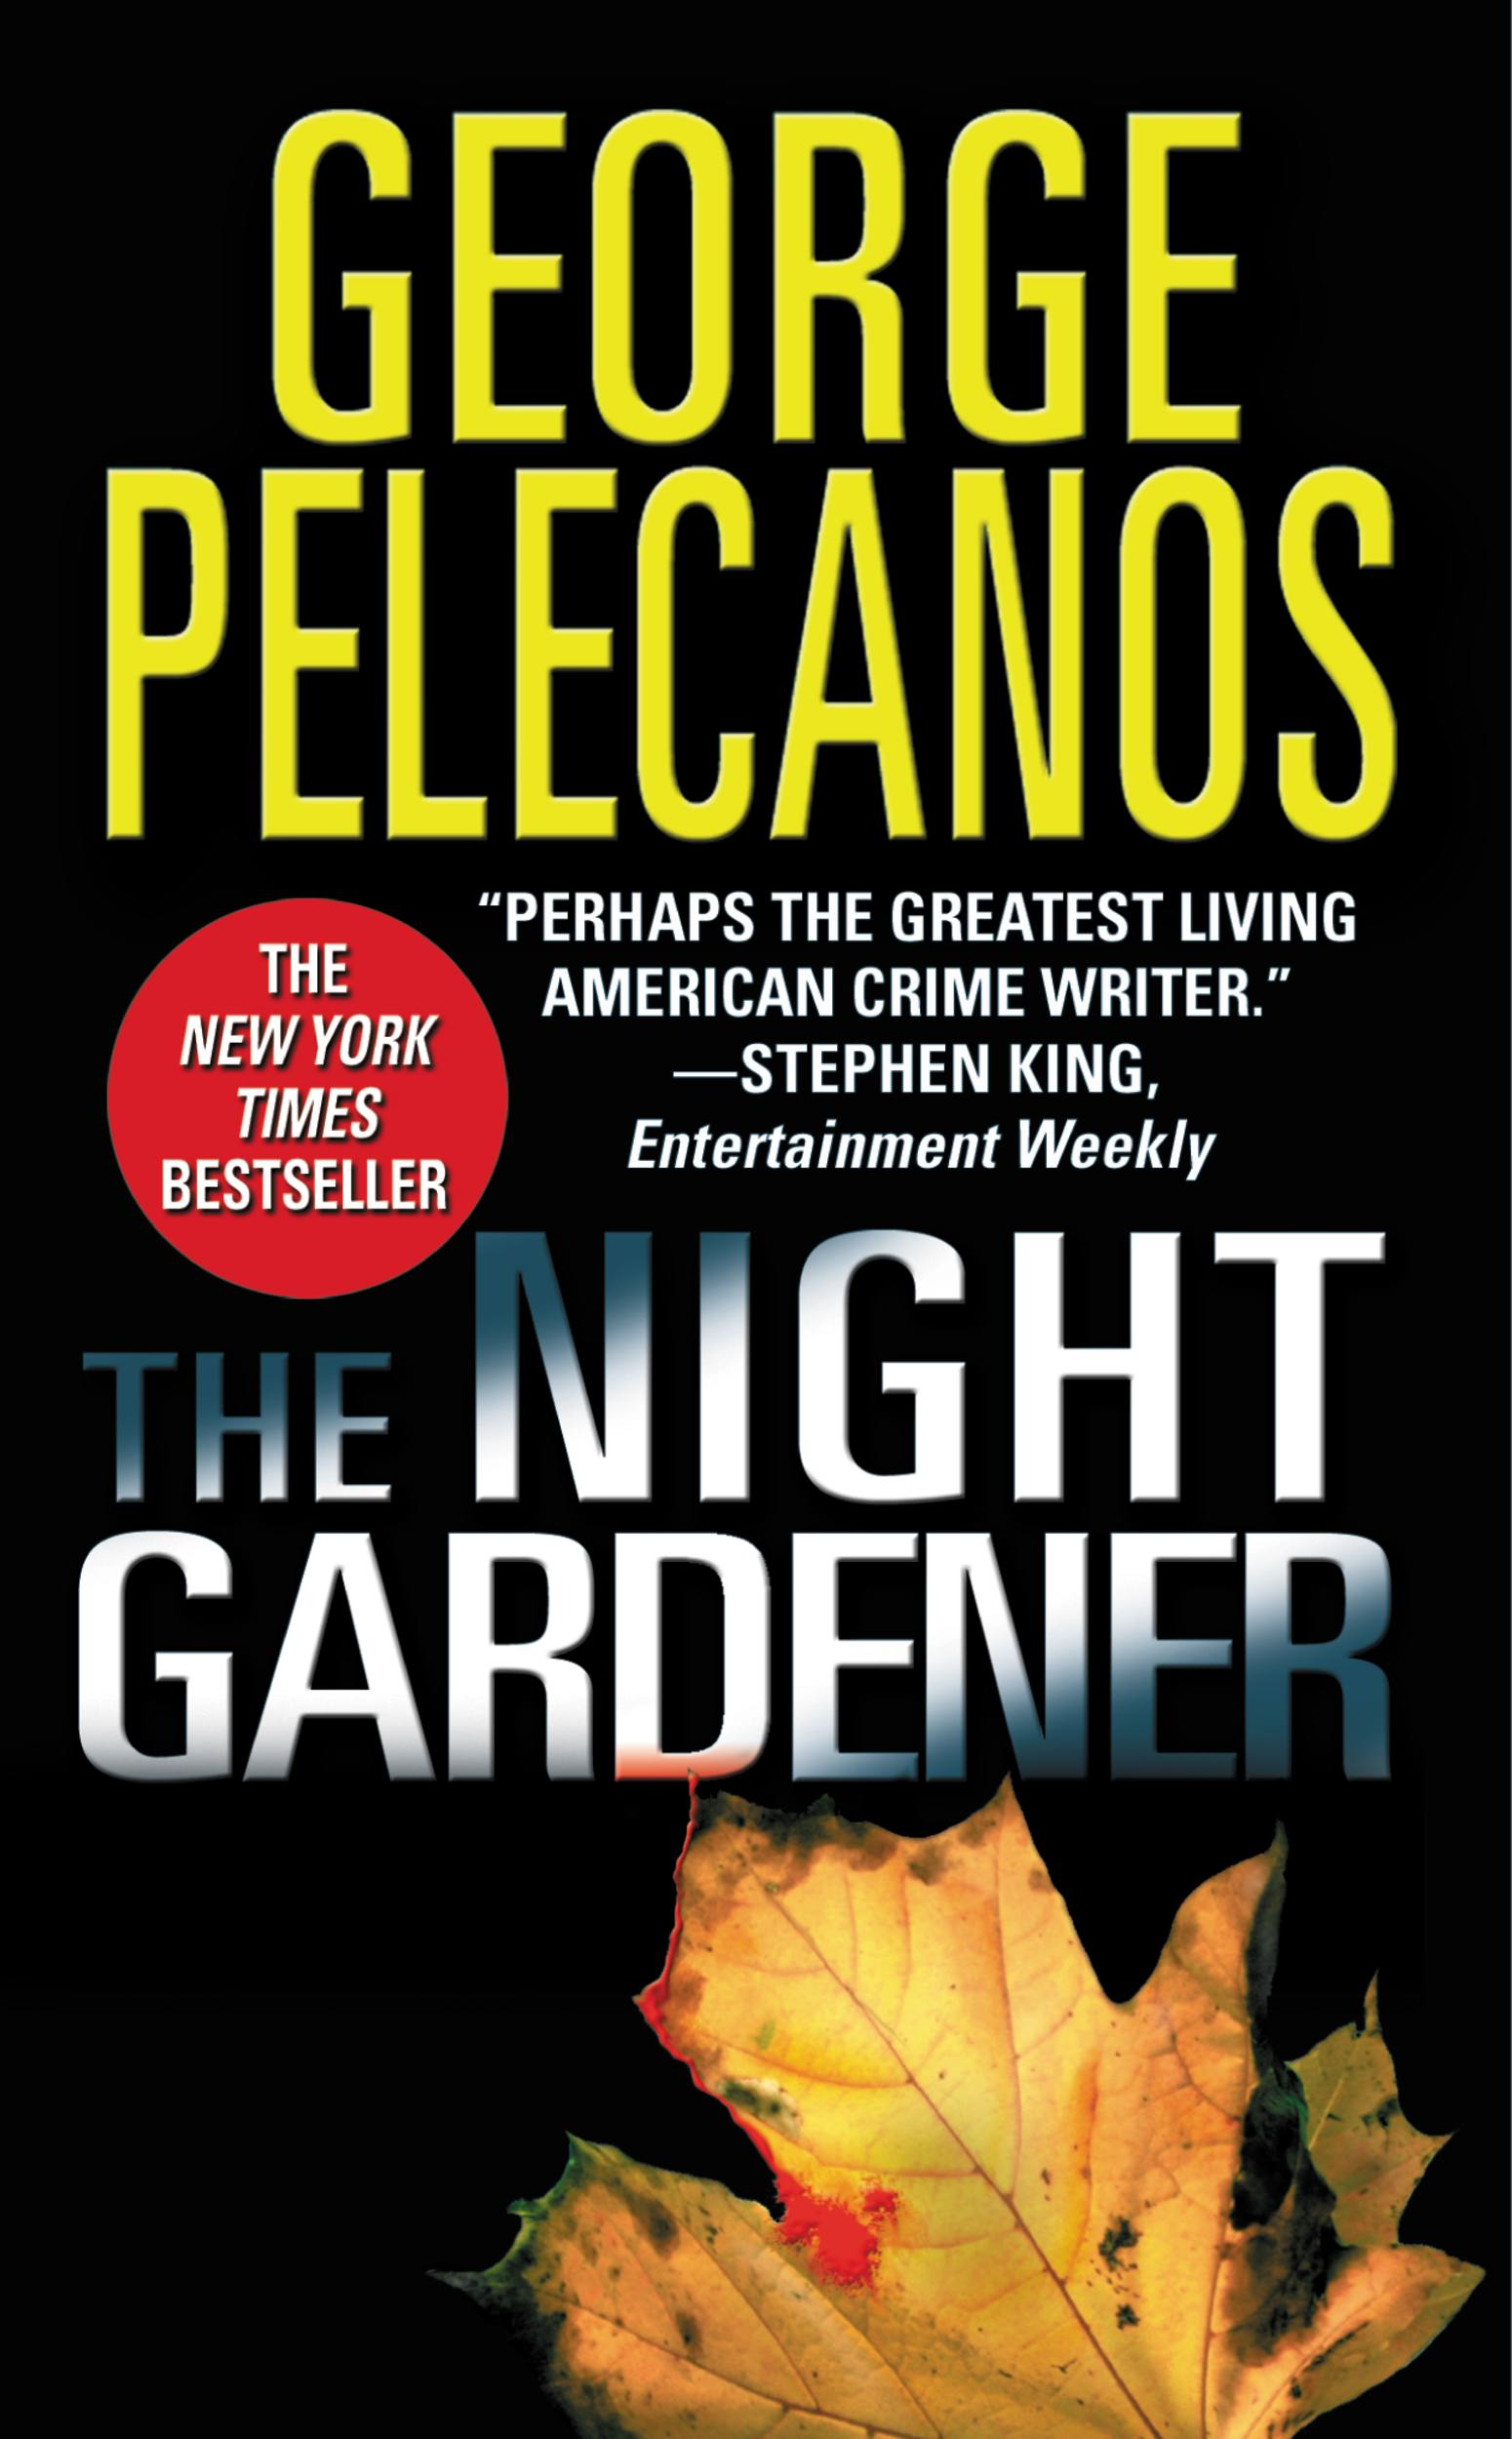 The Night Gardener By: George Pelecanos